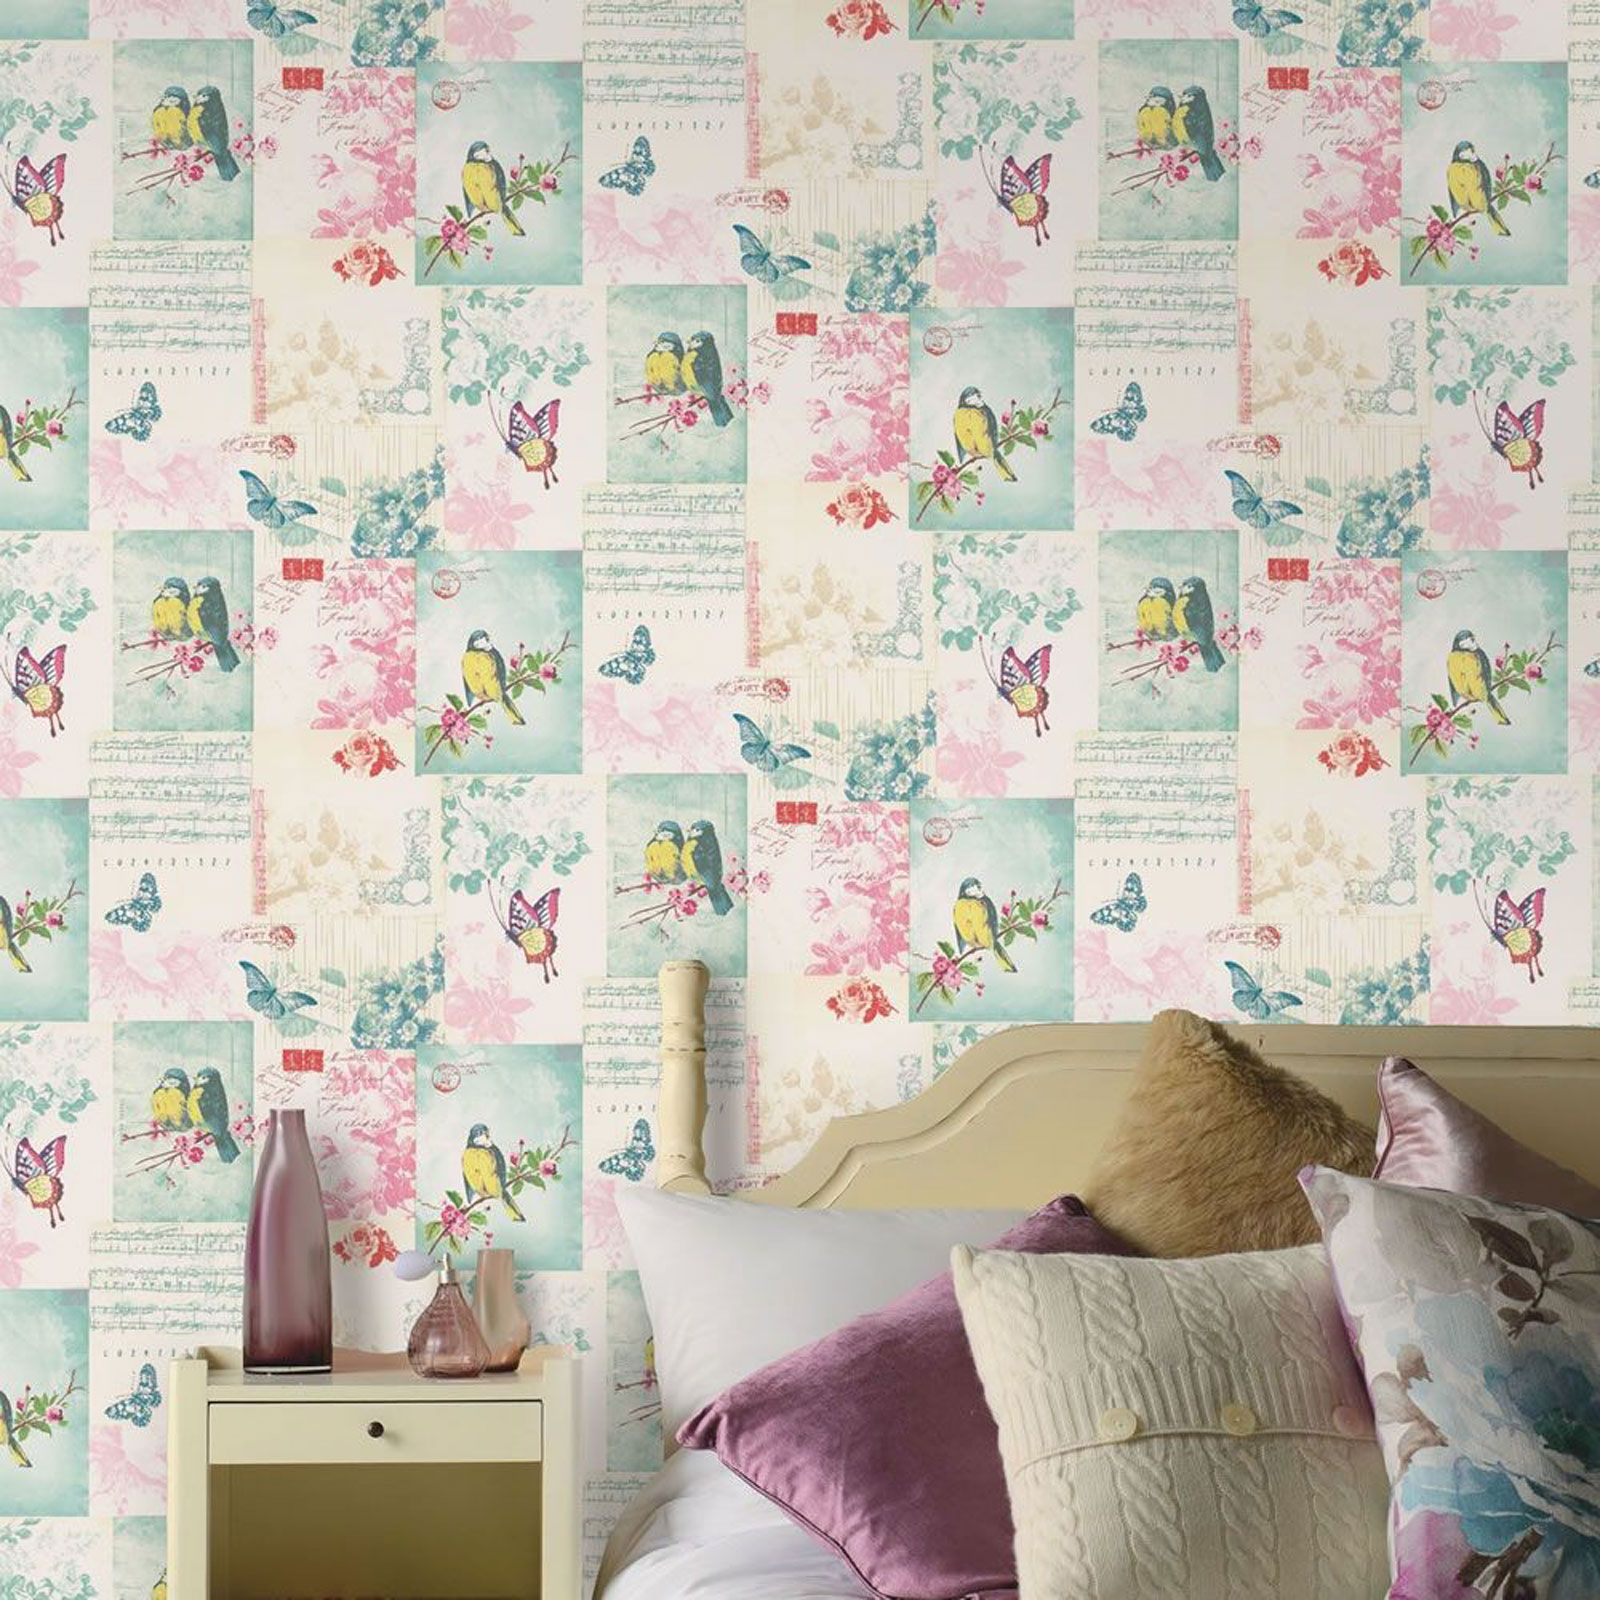 Girls Bedroom Wallpaper Pink Neutral Bedroom Colors For Kids Bedroom Layout Ideas Bedroom Cupboards For Small Rooms: BUTTERFLY WALLPAPER GIRLS BEDROOM DECOR PINK WHITE TEAL